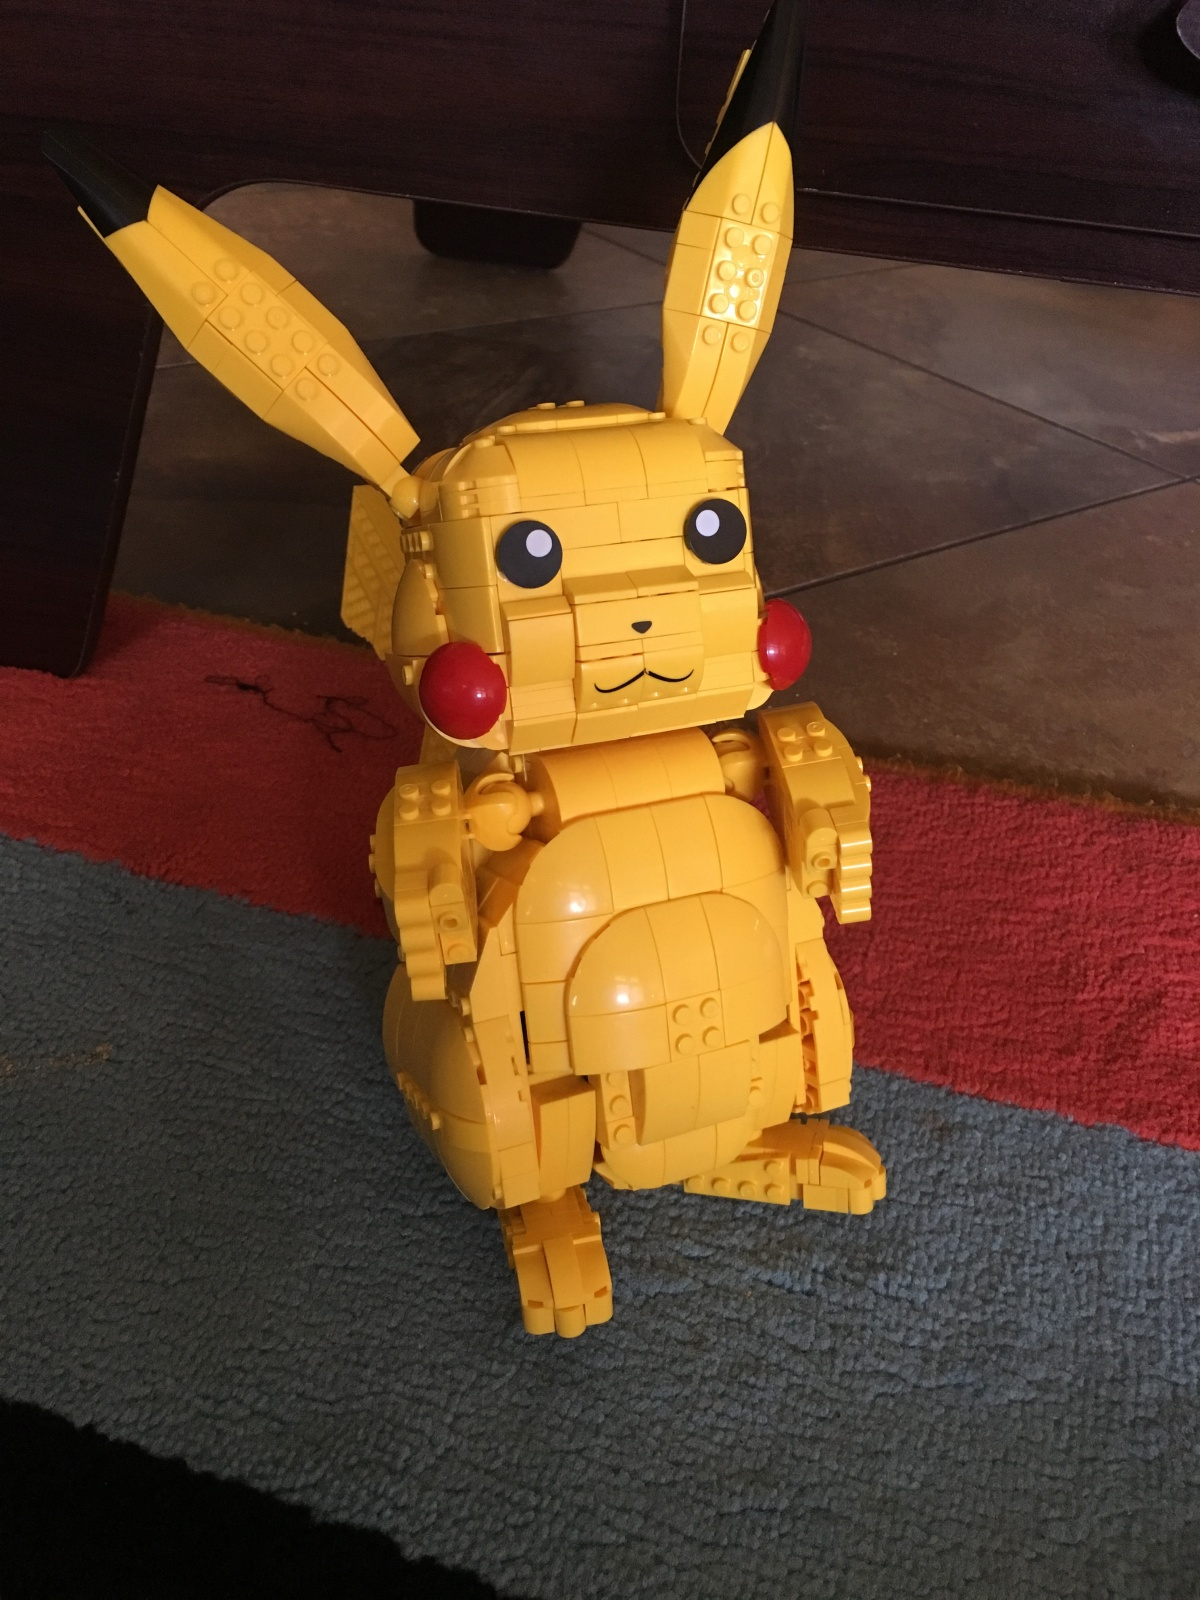 3 Things Learned while Building Pikachu with my Kids